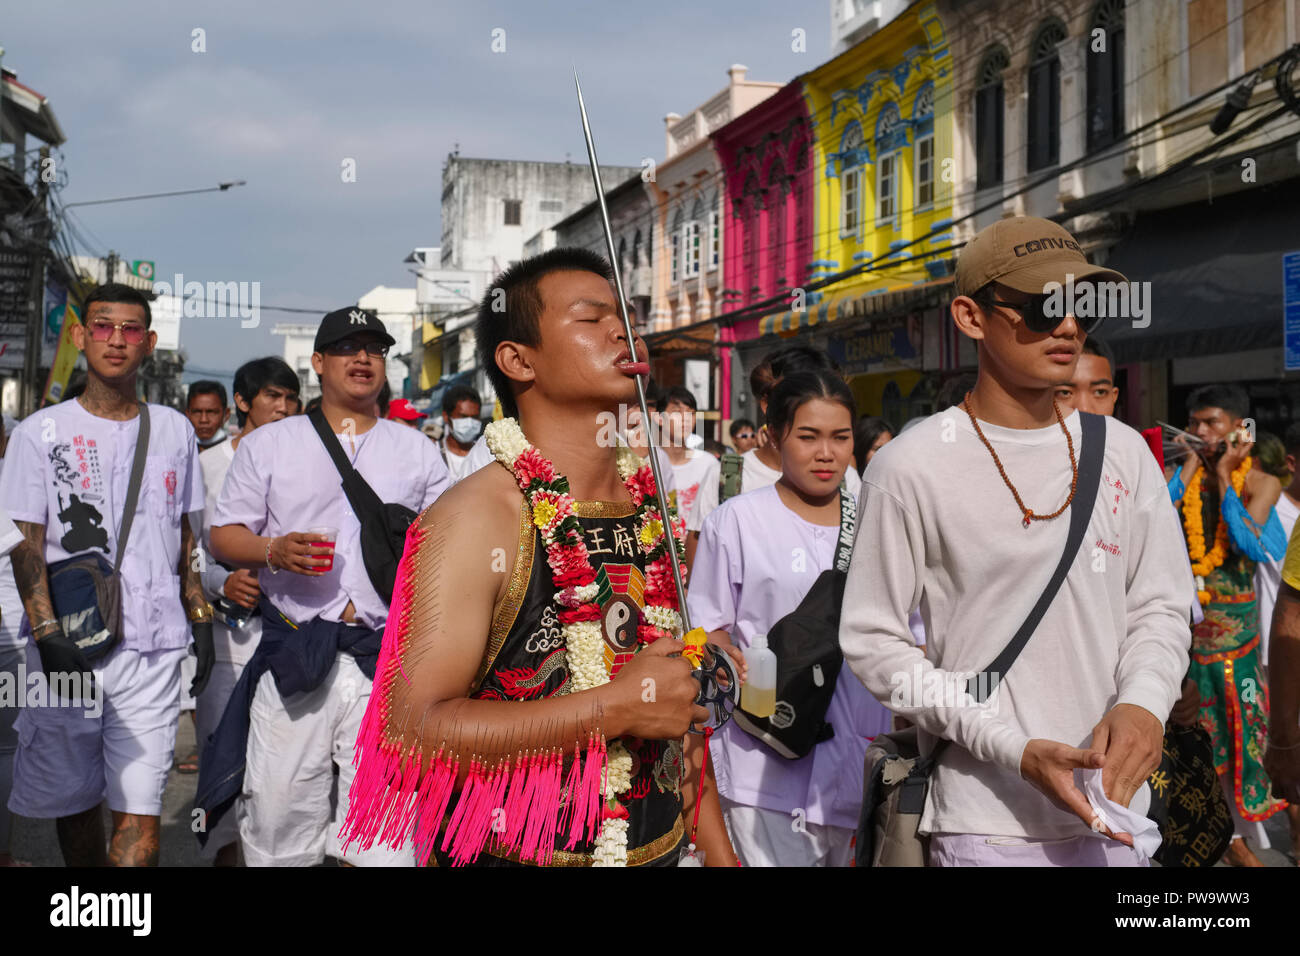 A spirit medium with his lip pierced as part of the rituals during the Vegetarian Festival in Phuket, Thailand, in procession through Phang-Nga Rd. - Stock Image